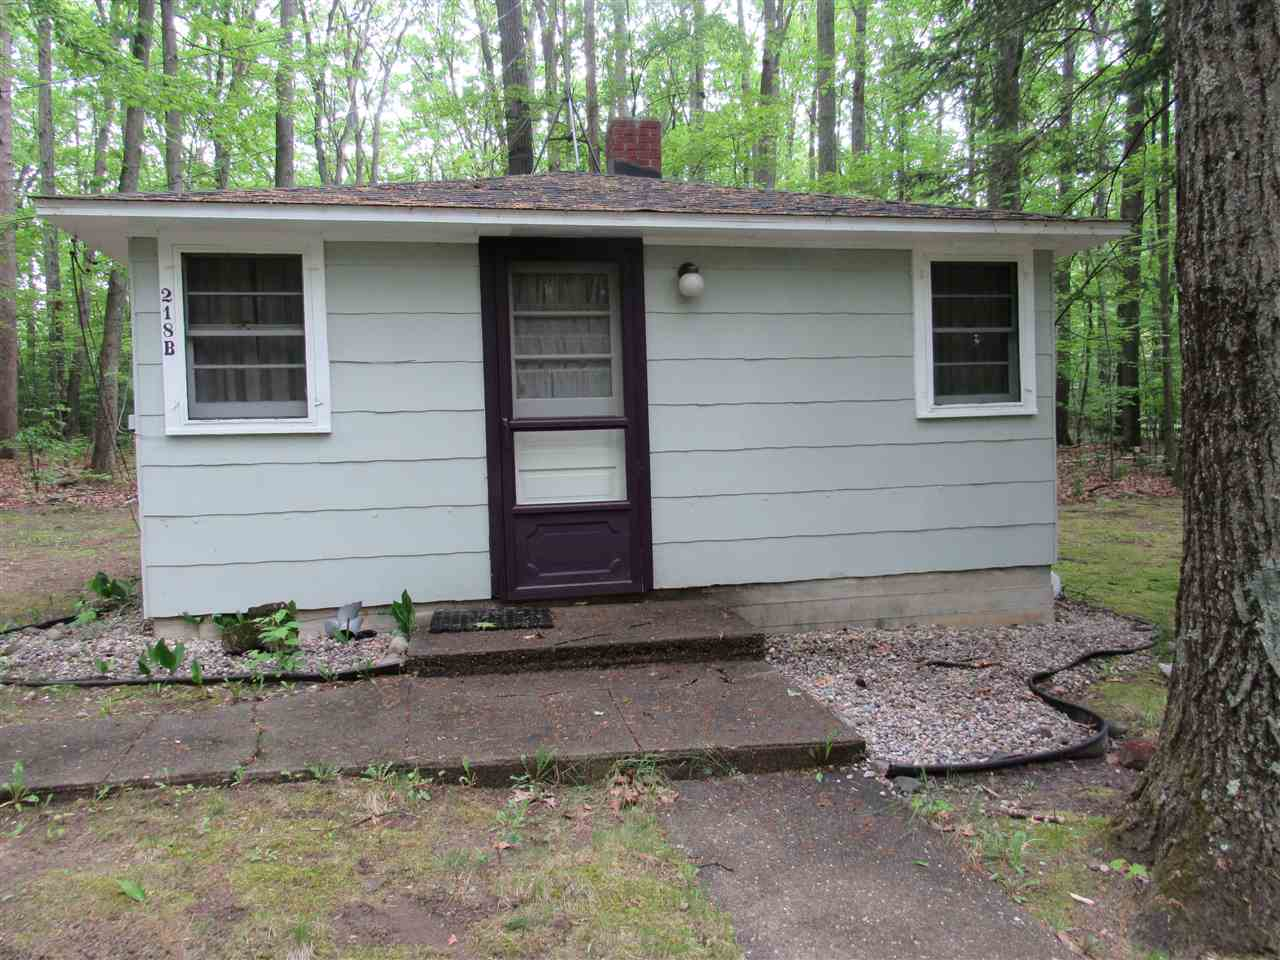 primary photo for 218 Chaney Point Dr B-2, Roscommon, MI 48653, US